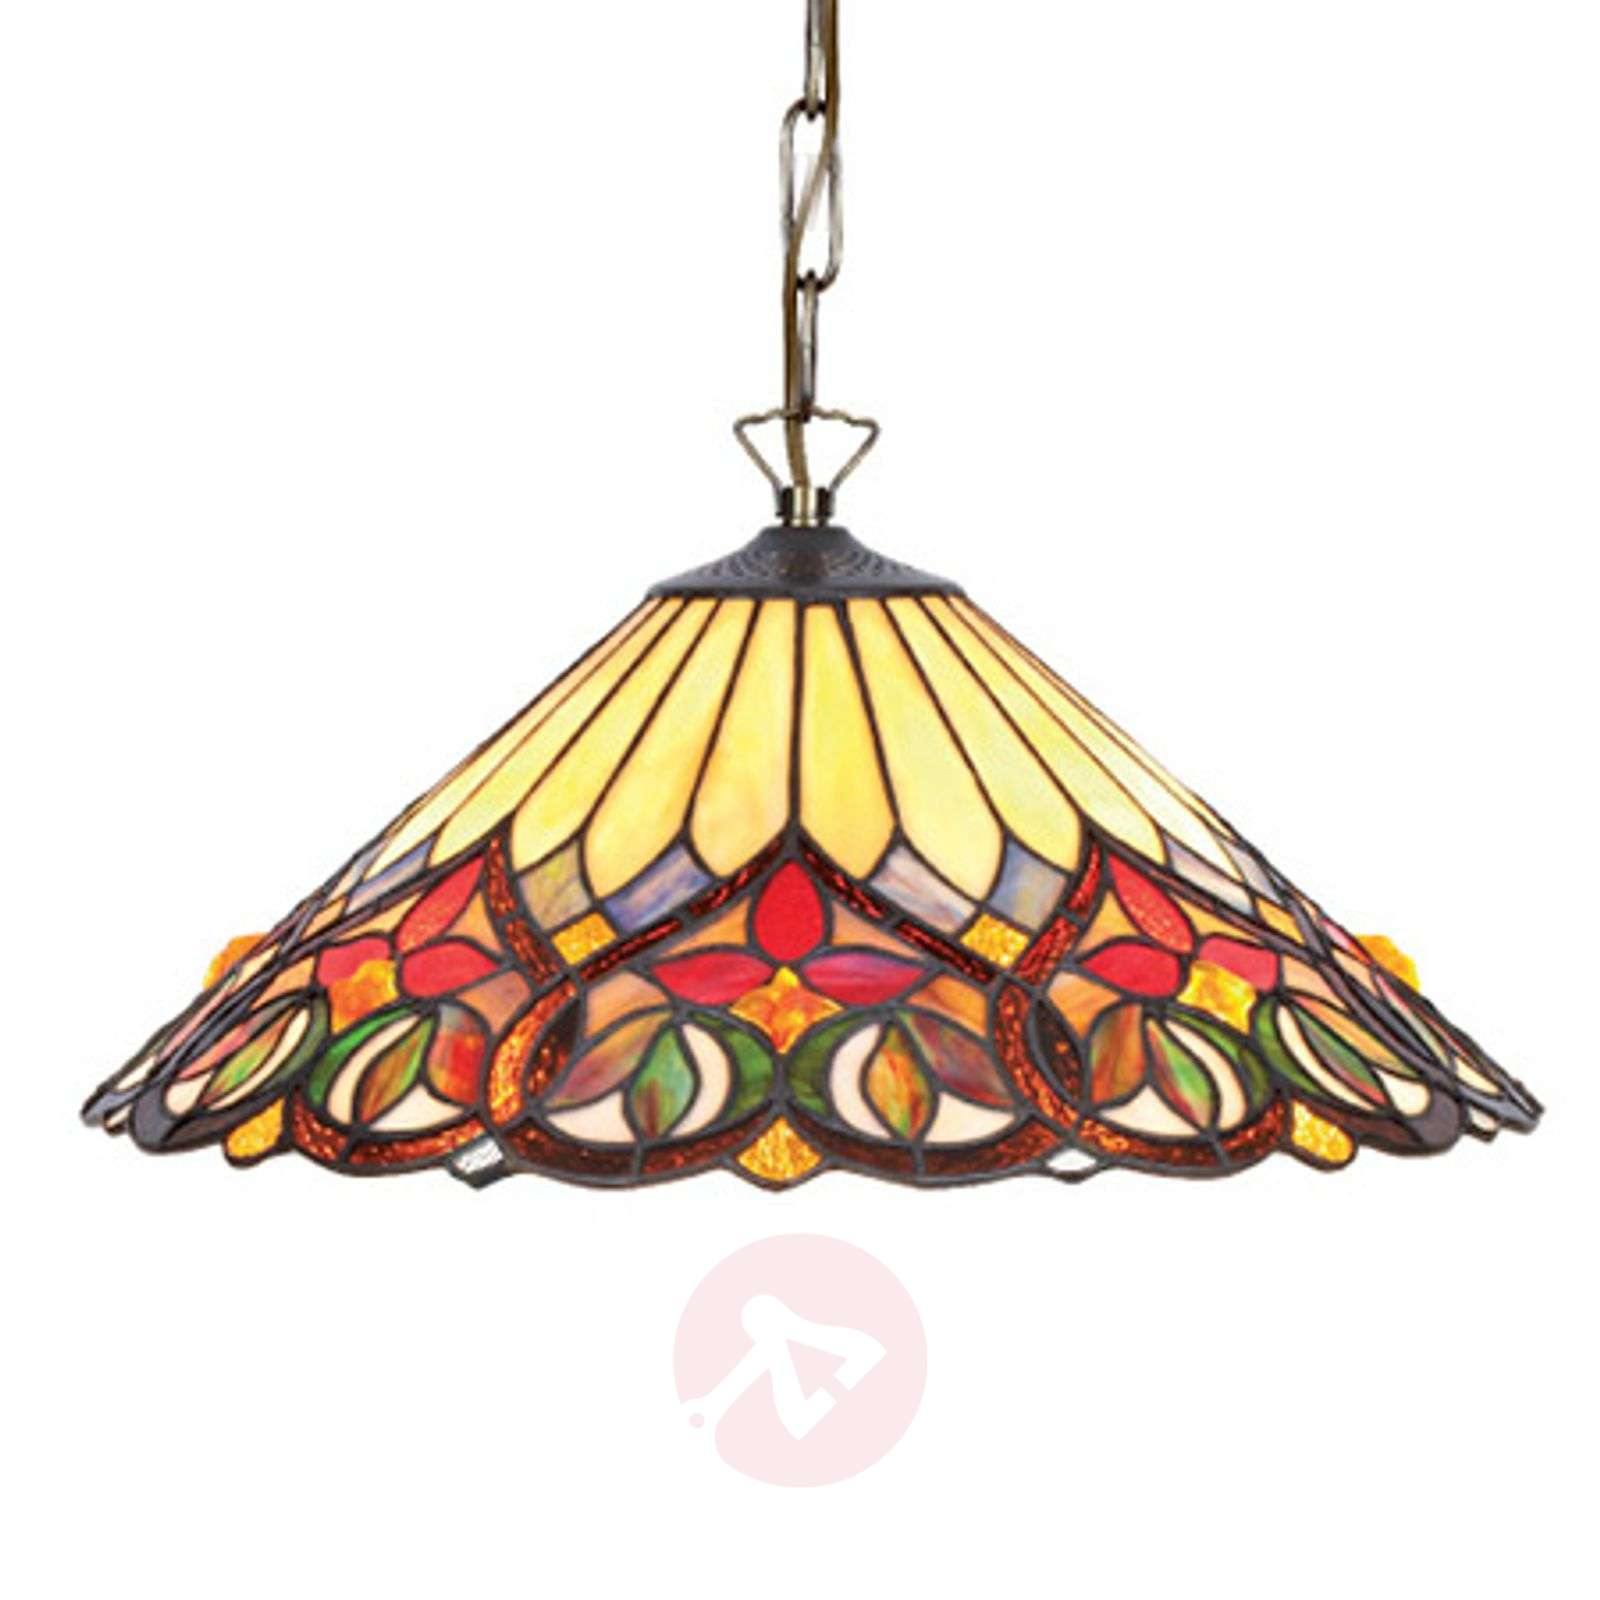 Colourful glass hanging light Anni, Tiffany style-1032325-01